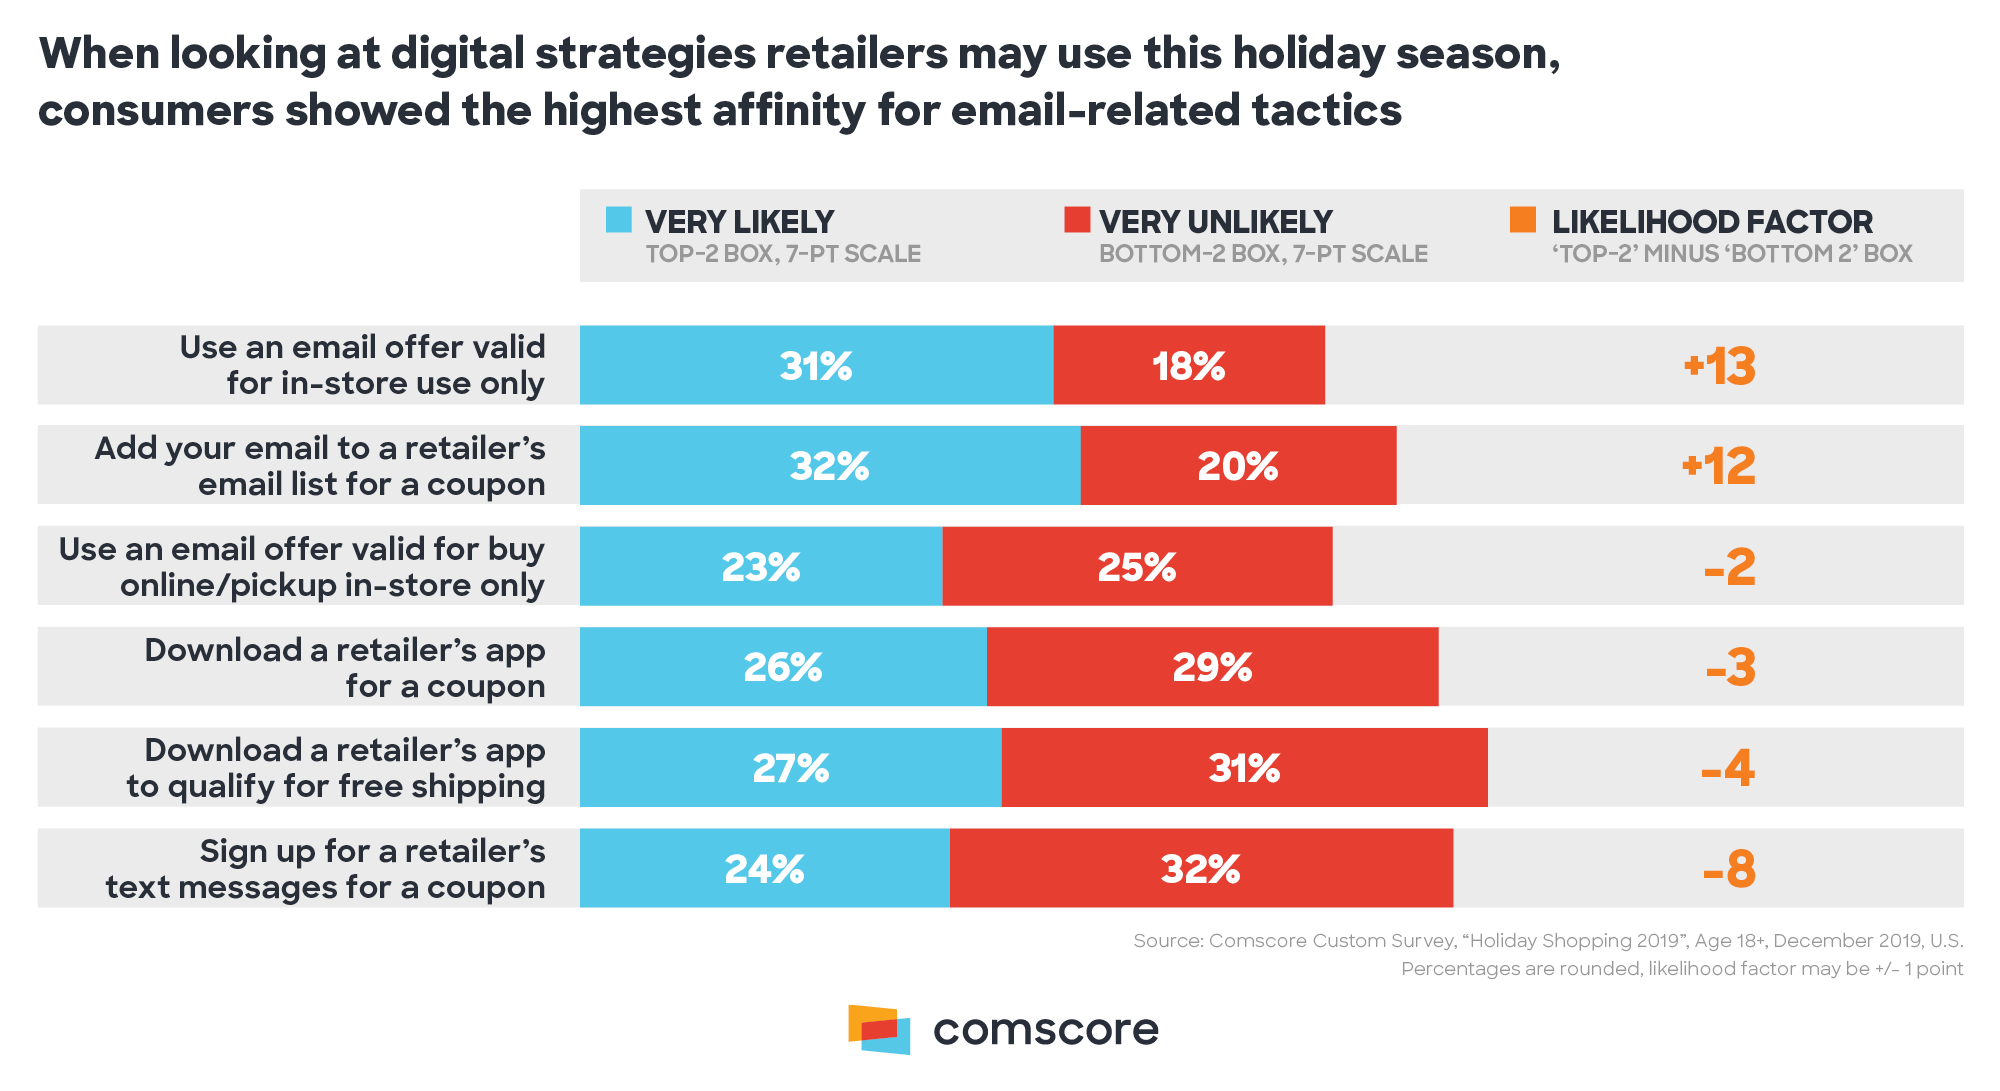 Digital Strategies Retailers May Use